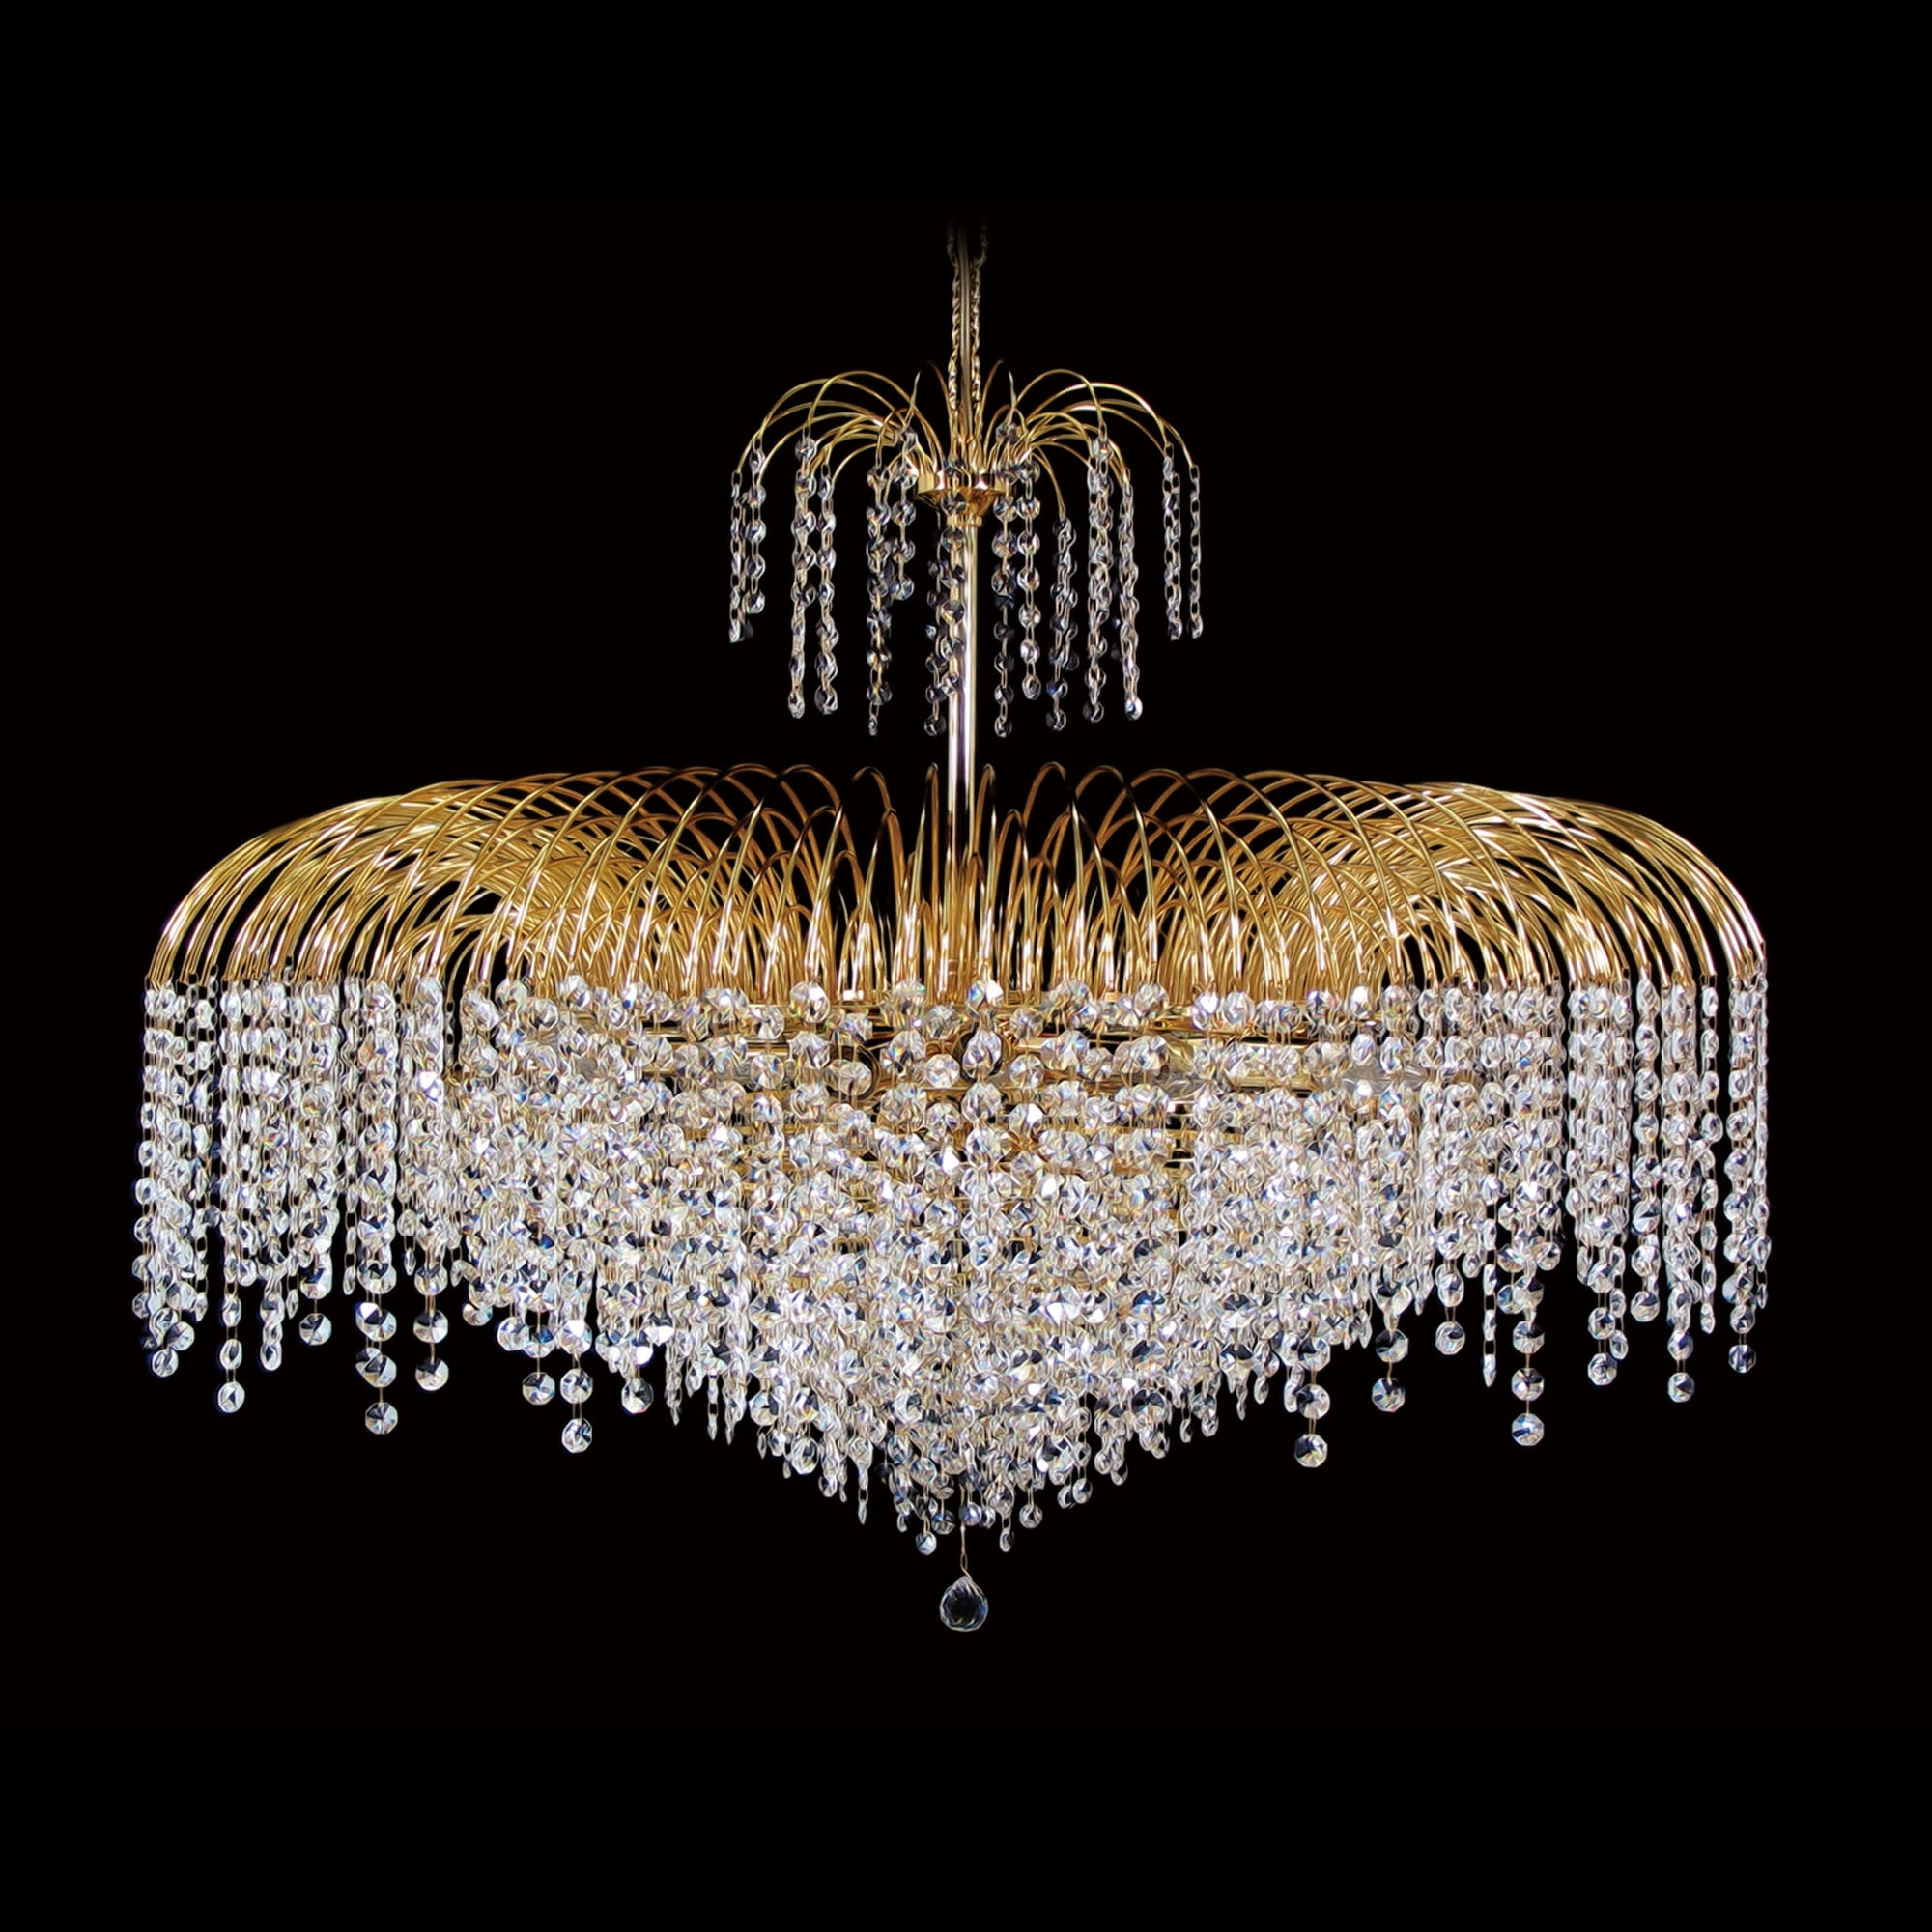 "15 Light – 32"" Asfour Lead Crystal 24Ct Gold Plated Waterfall Pertaining To Most Recent Lead Crystal Chandelier (View 8 of 15)"